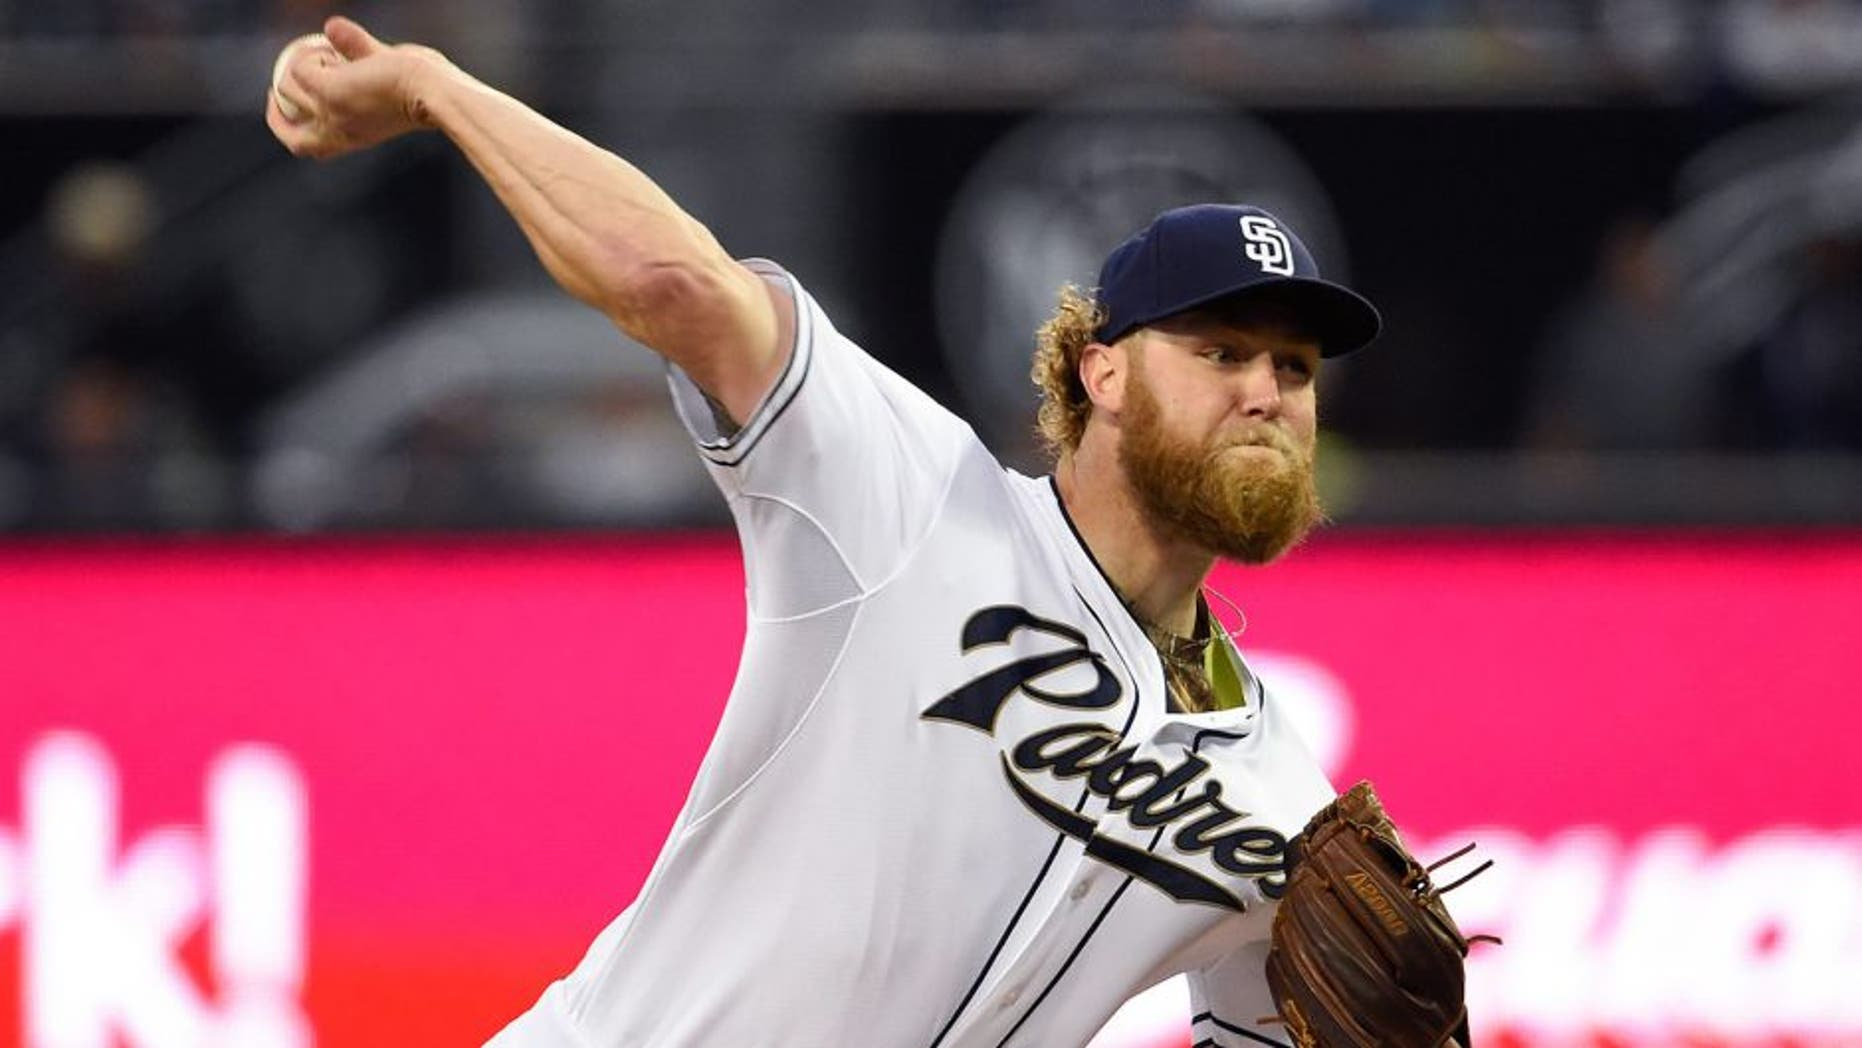 SAN DIEGO, CA - APRIL 13: Andrew Cashner #34 of the San Diego Padres pitches during the first inning of a baseball game against the Arizona Diamondbacks at Petco Park April 13, 2015 in San Diego, California. (Photo by Denis Poroy/Getty Images)